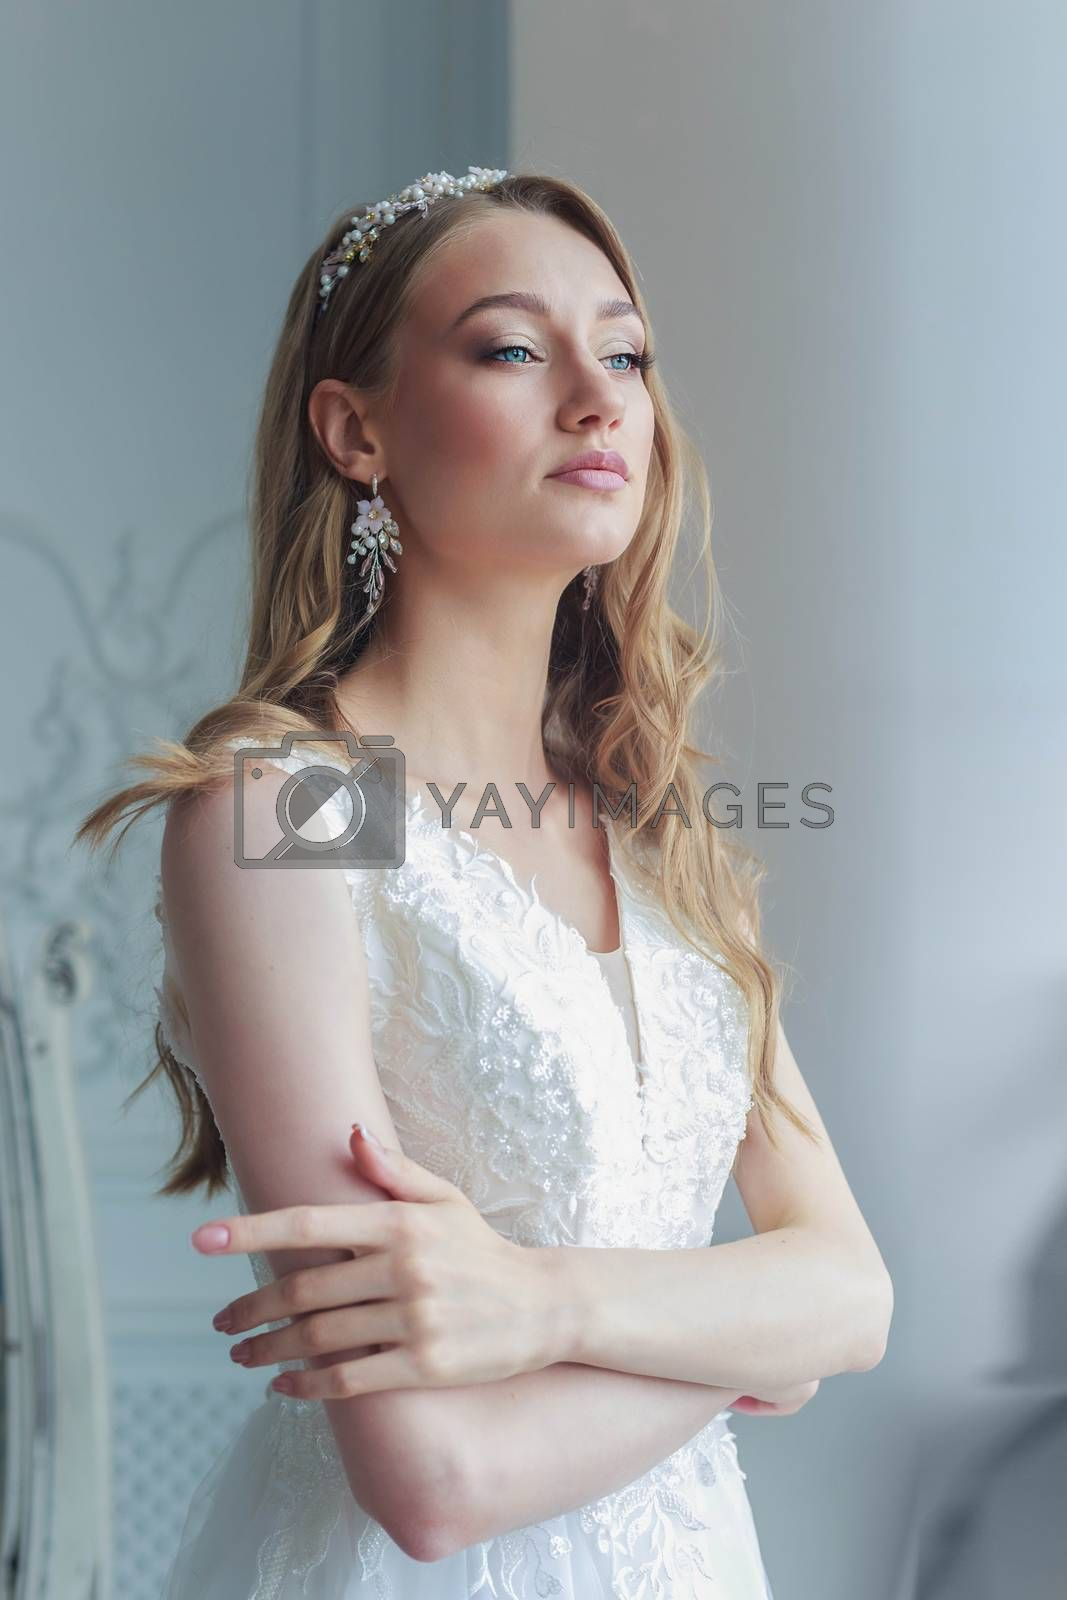 Close-up portrait of a bride in a white wedding dress looks attentively aside.